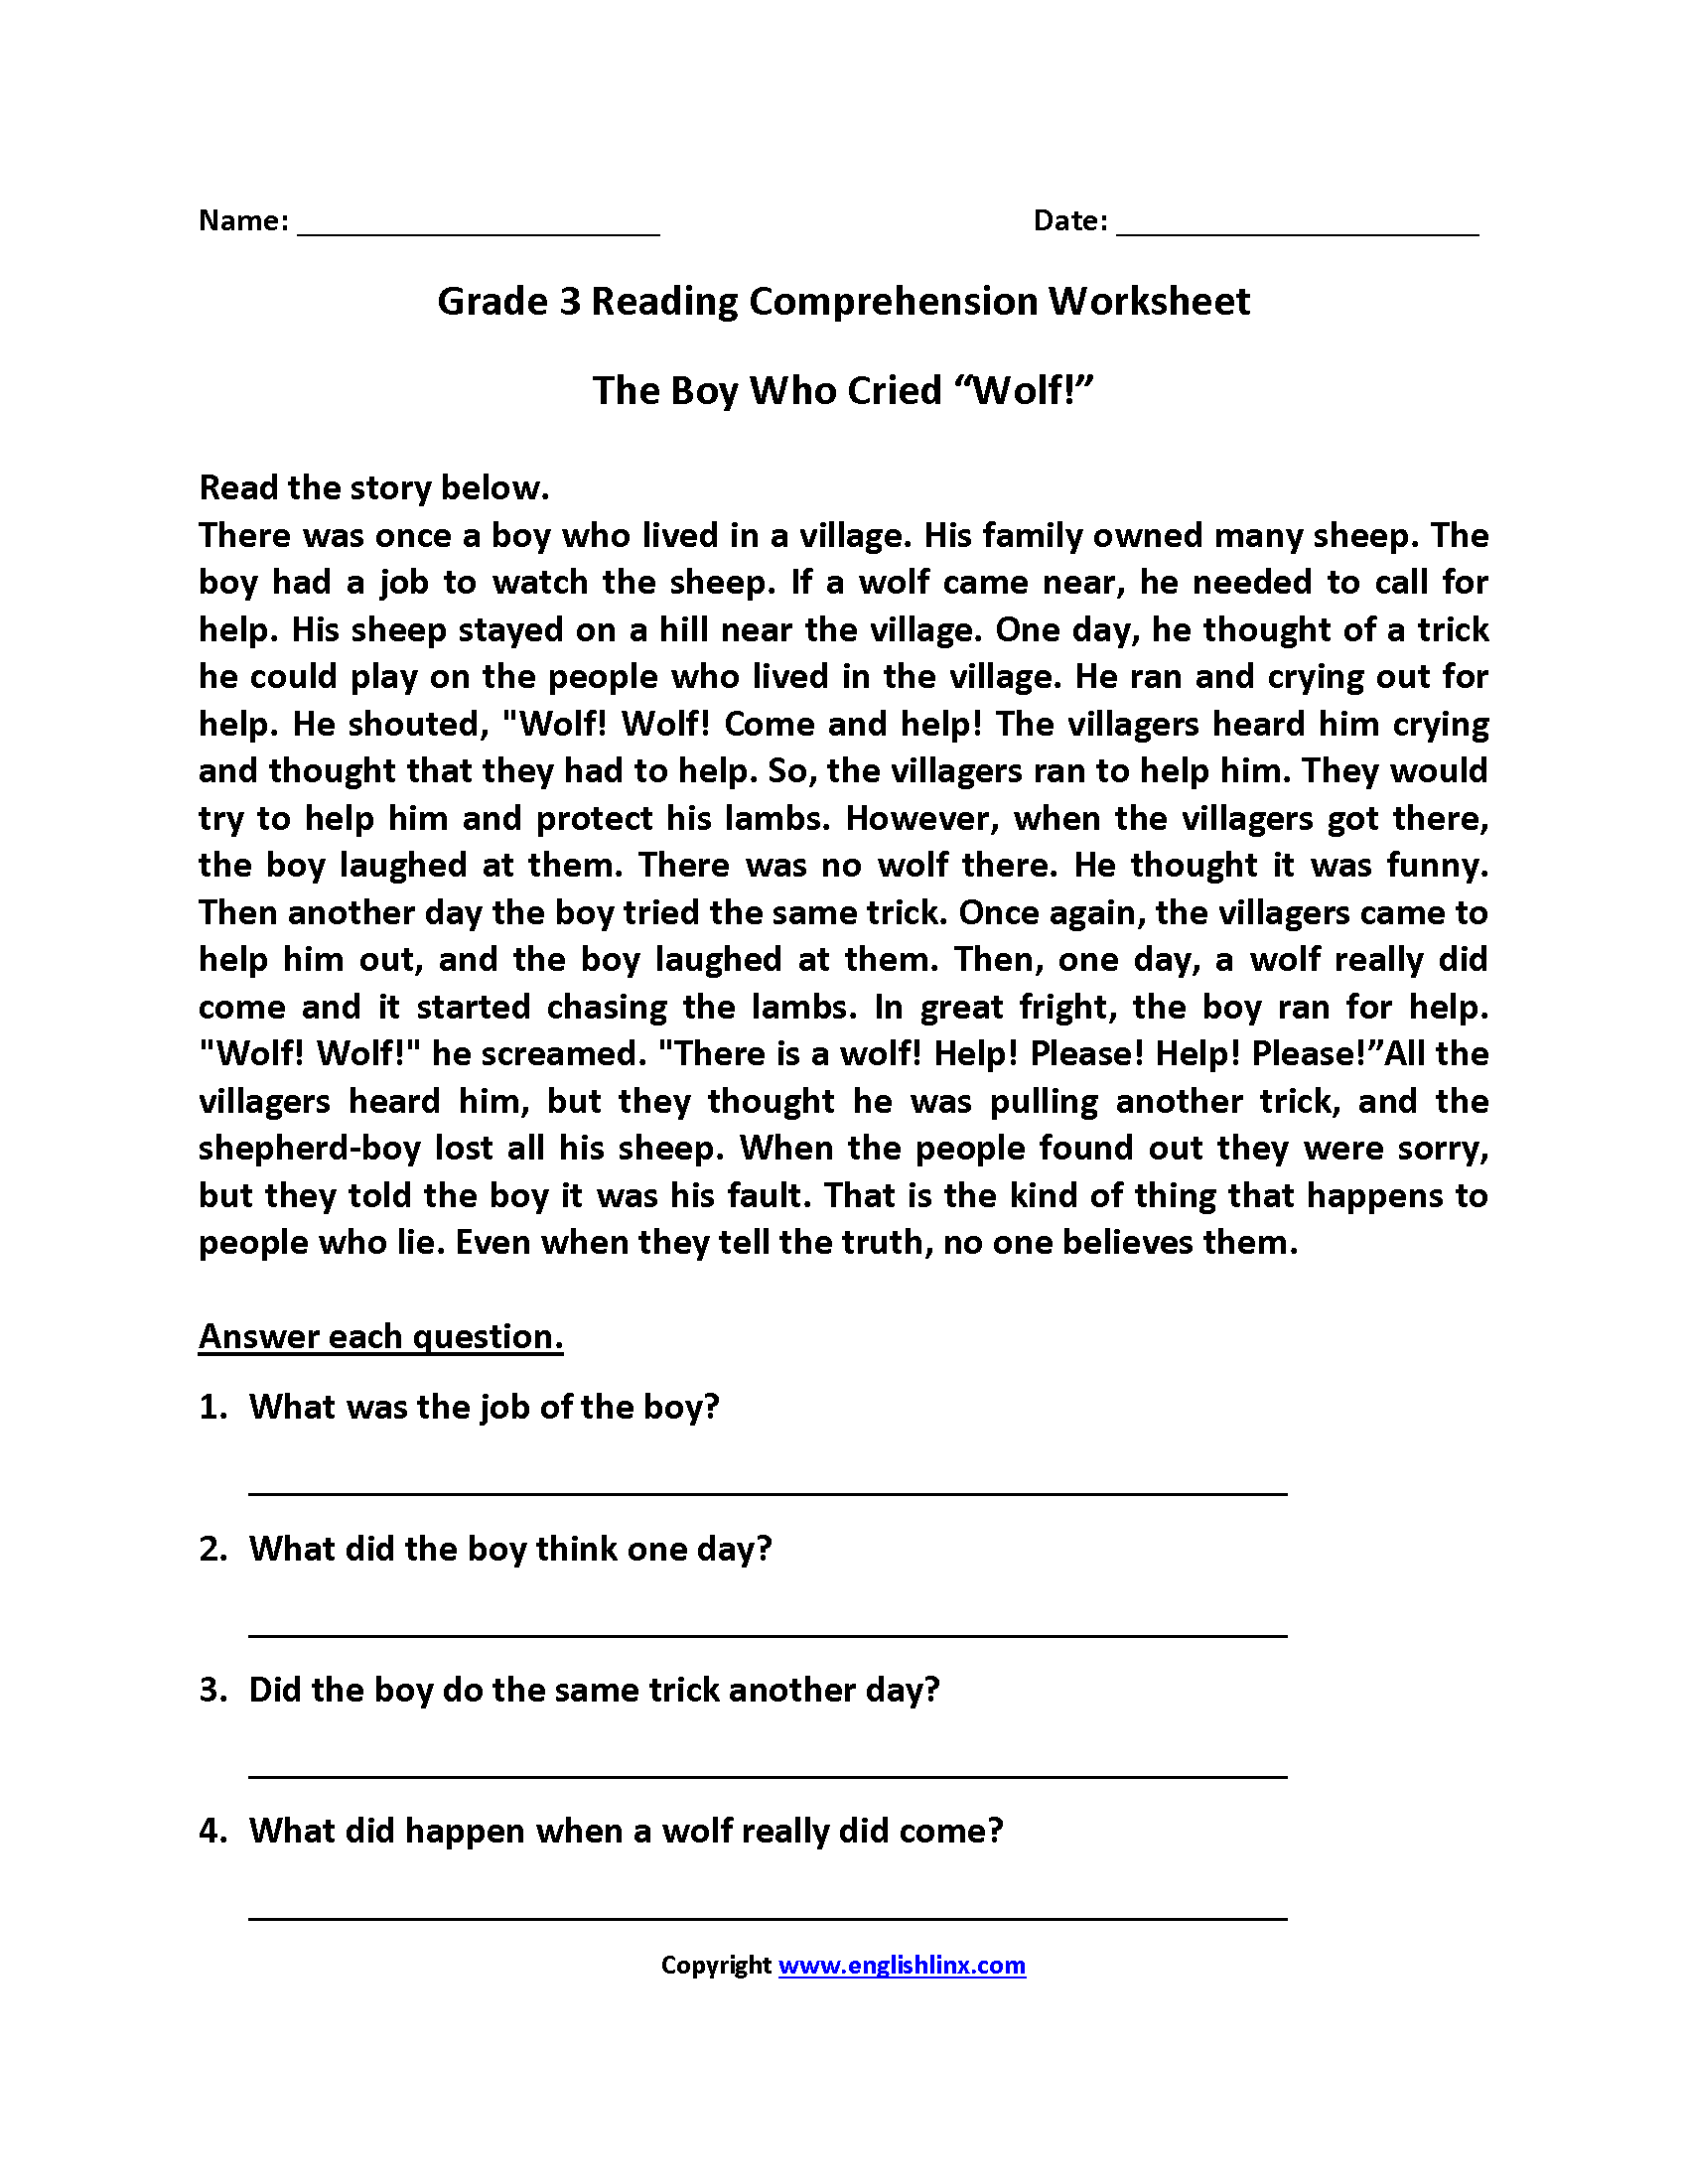 Worksheet On Comprehension